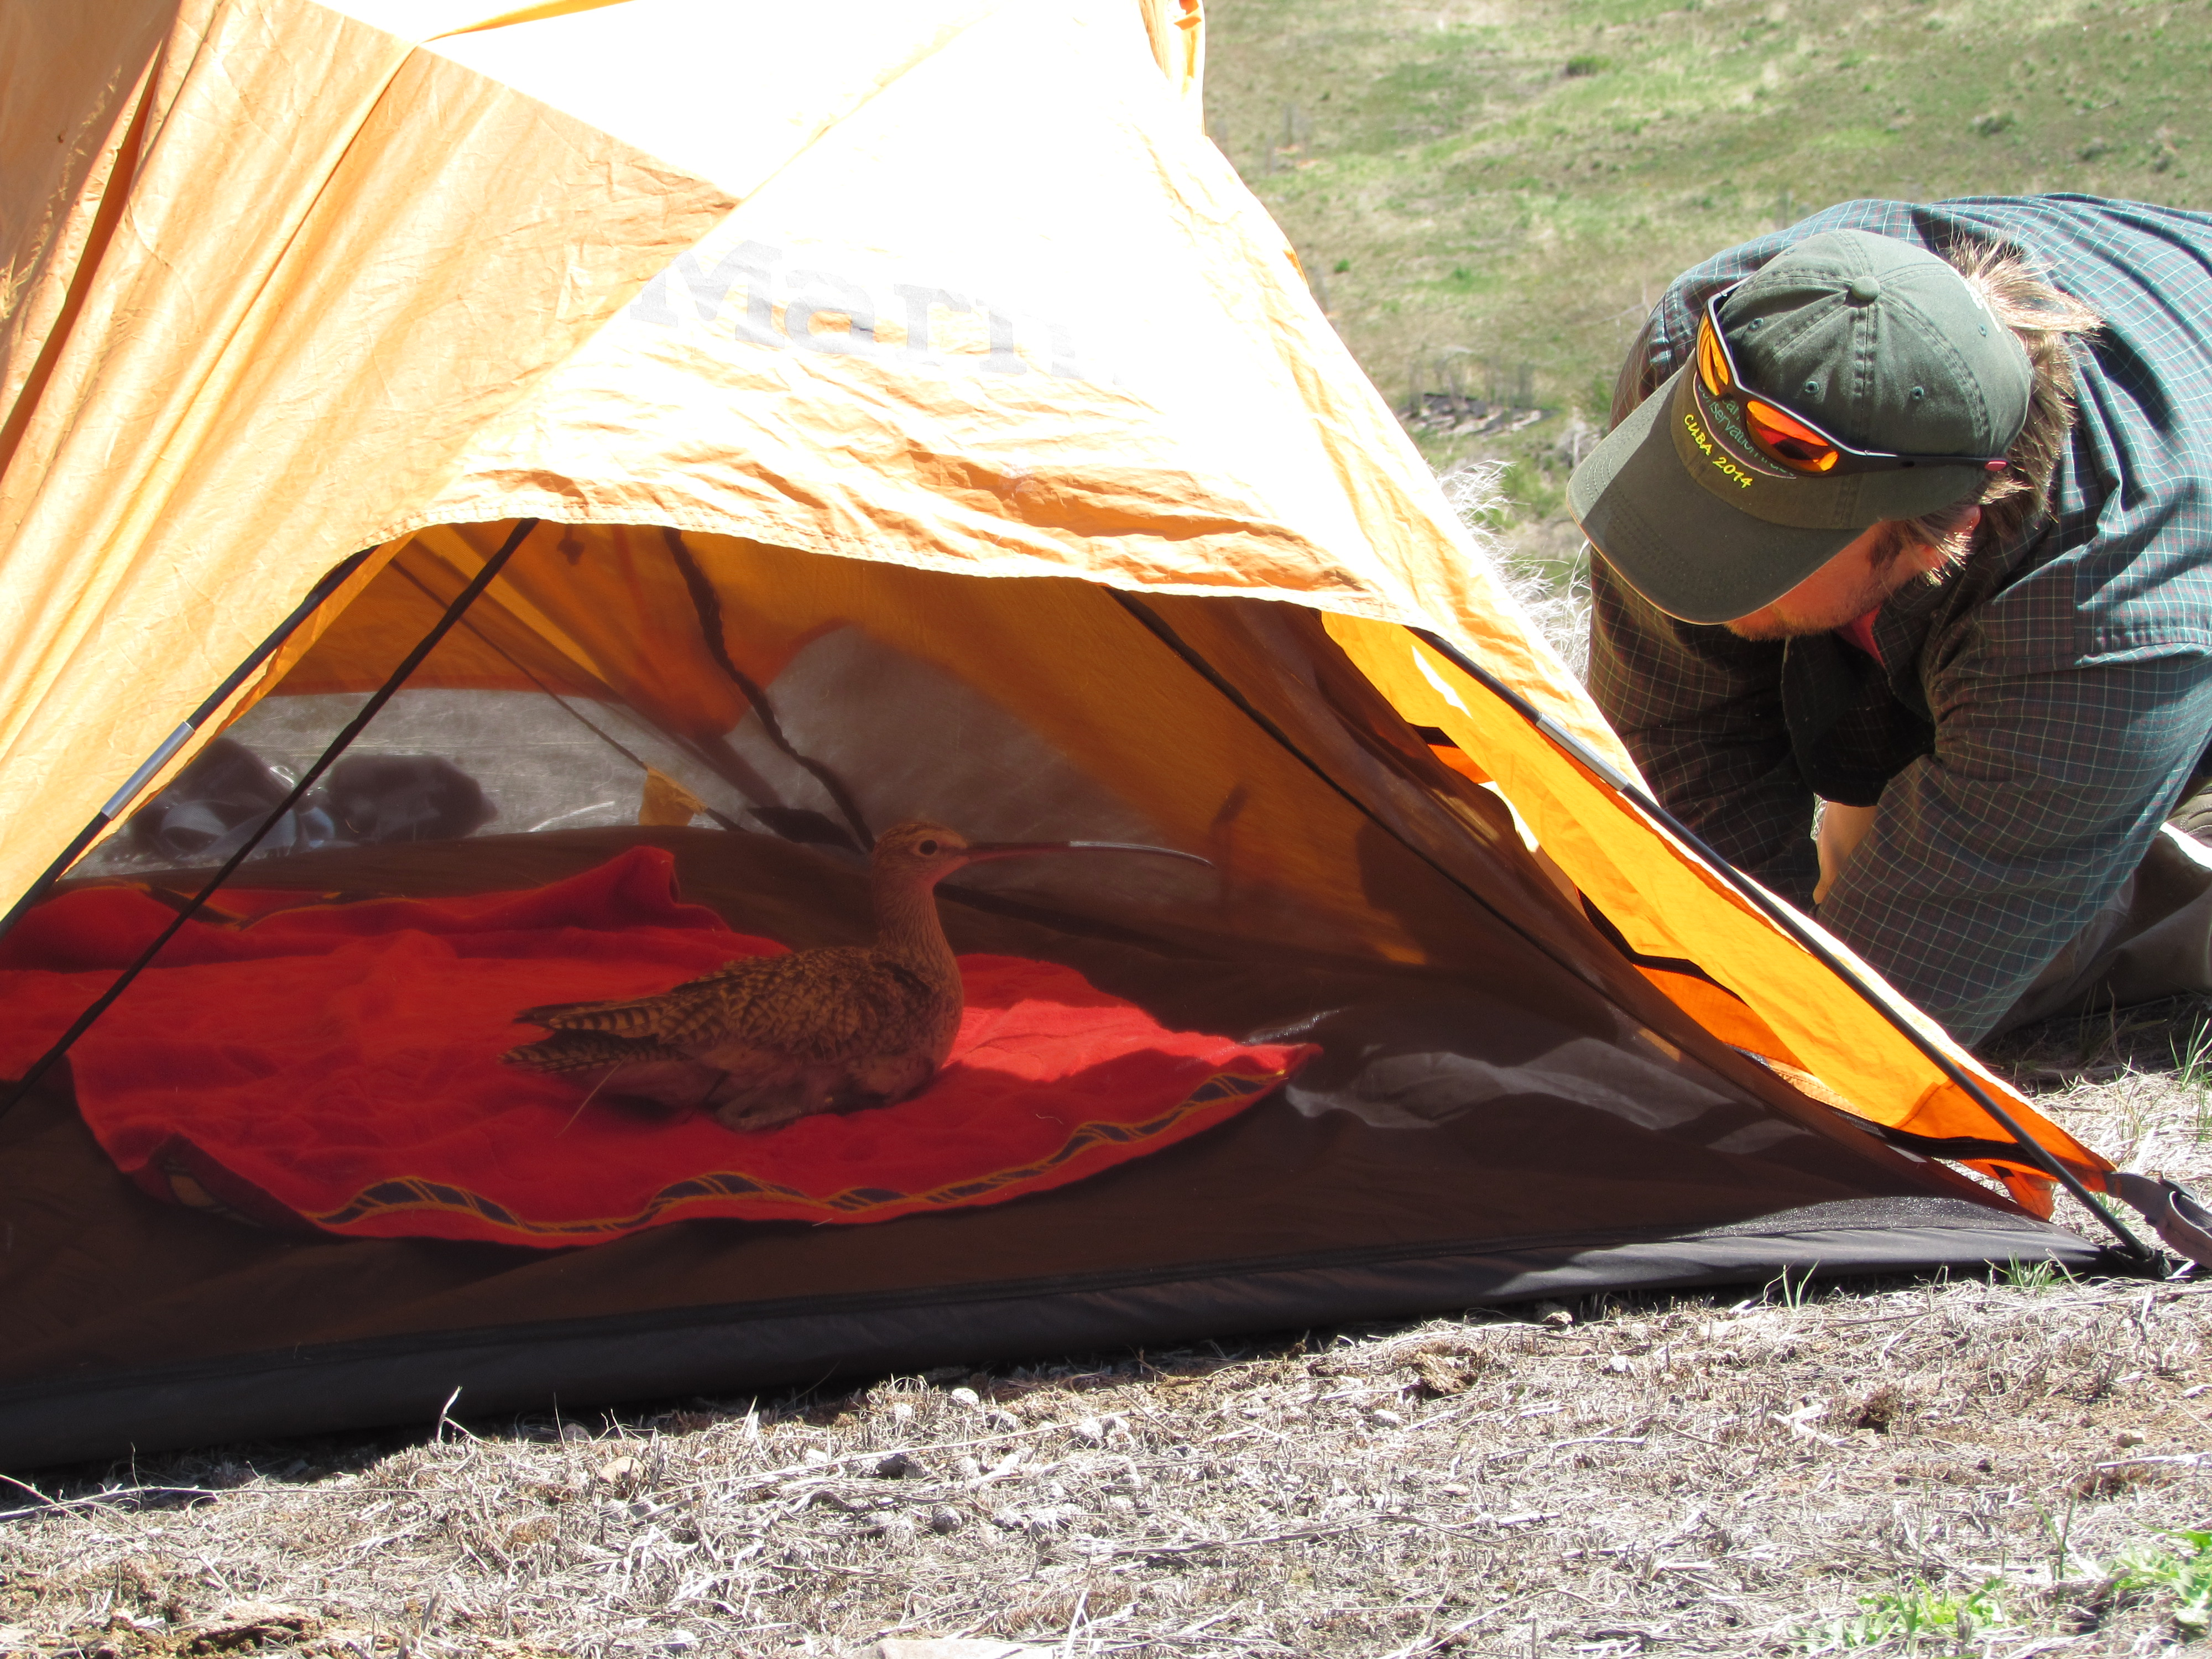 a curlew sits in a mesh tent as a biologist peers in from the outside